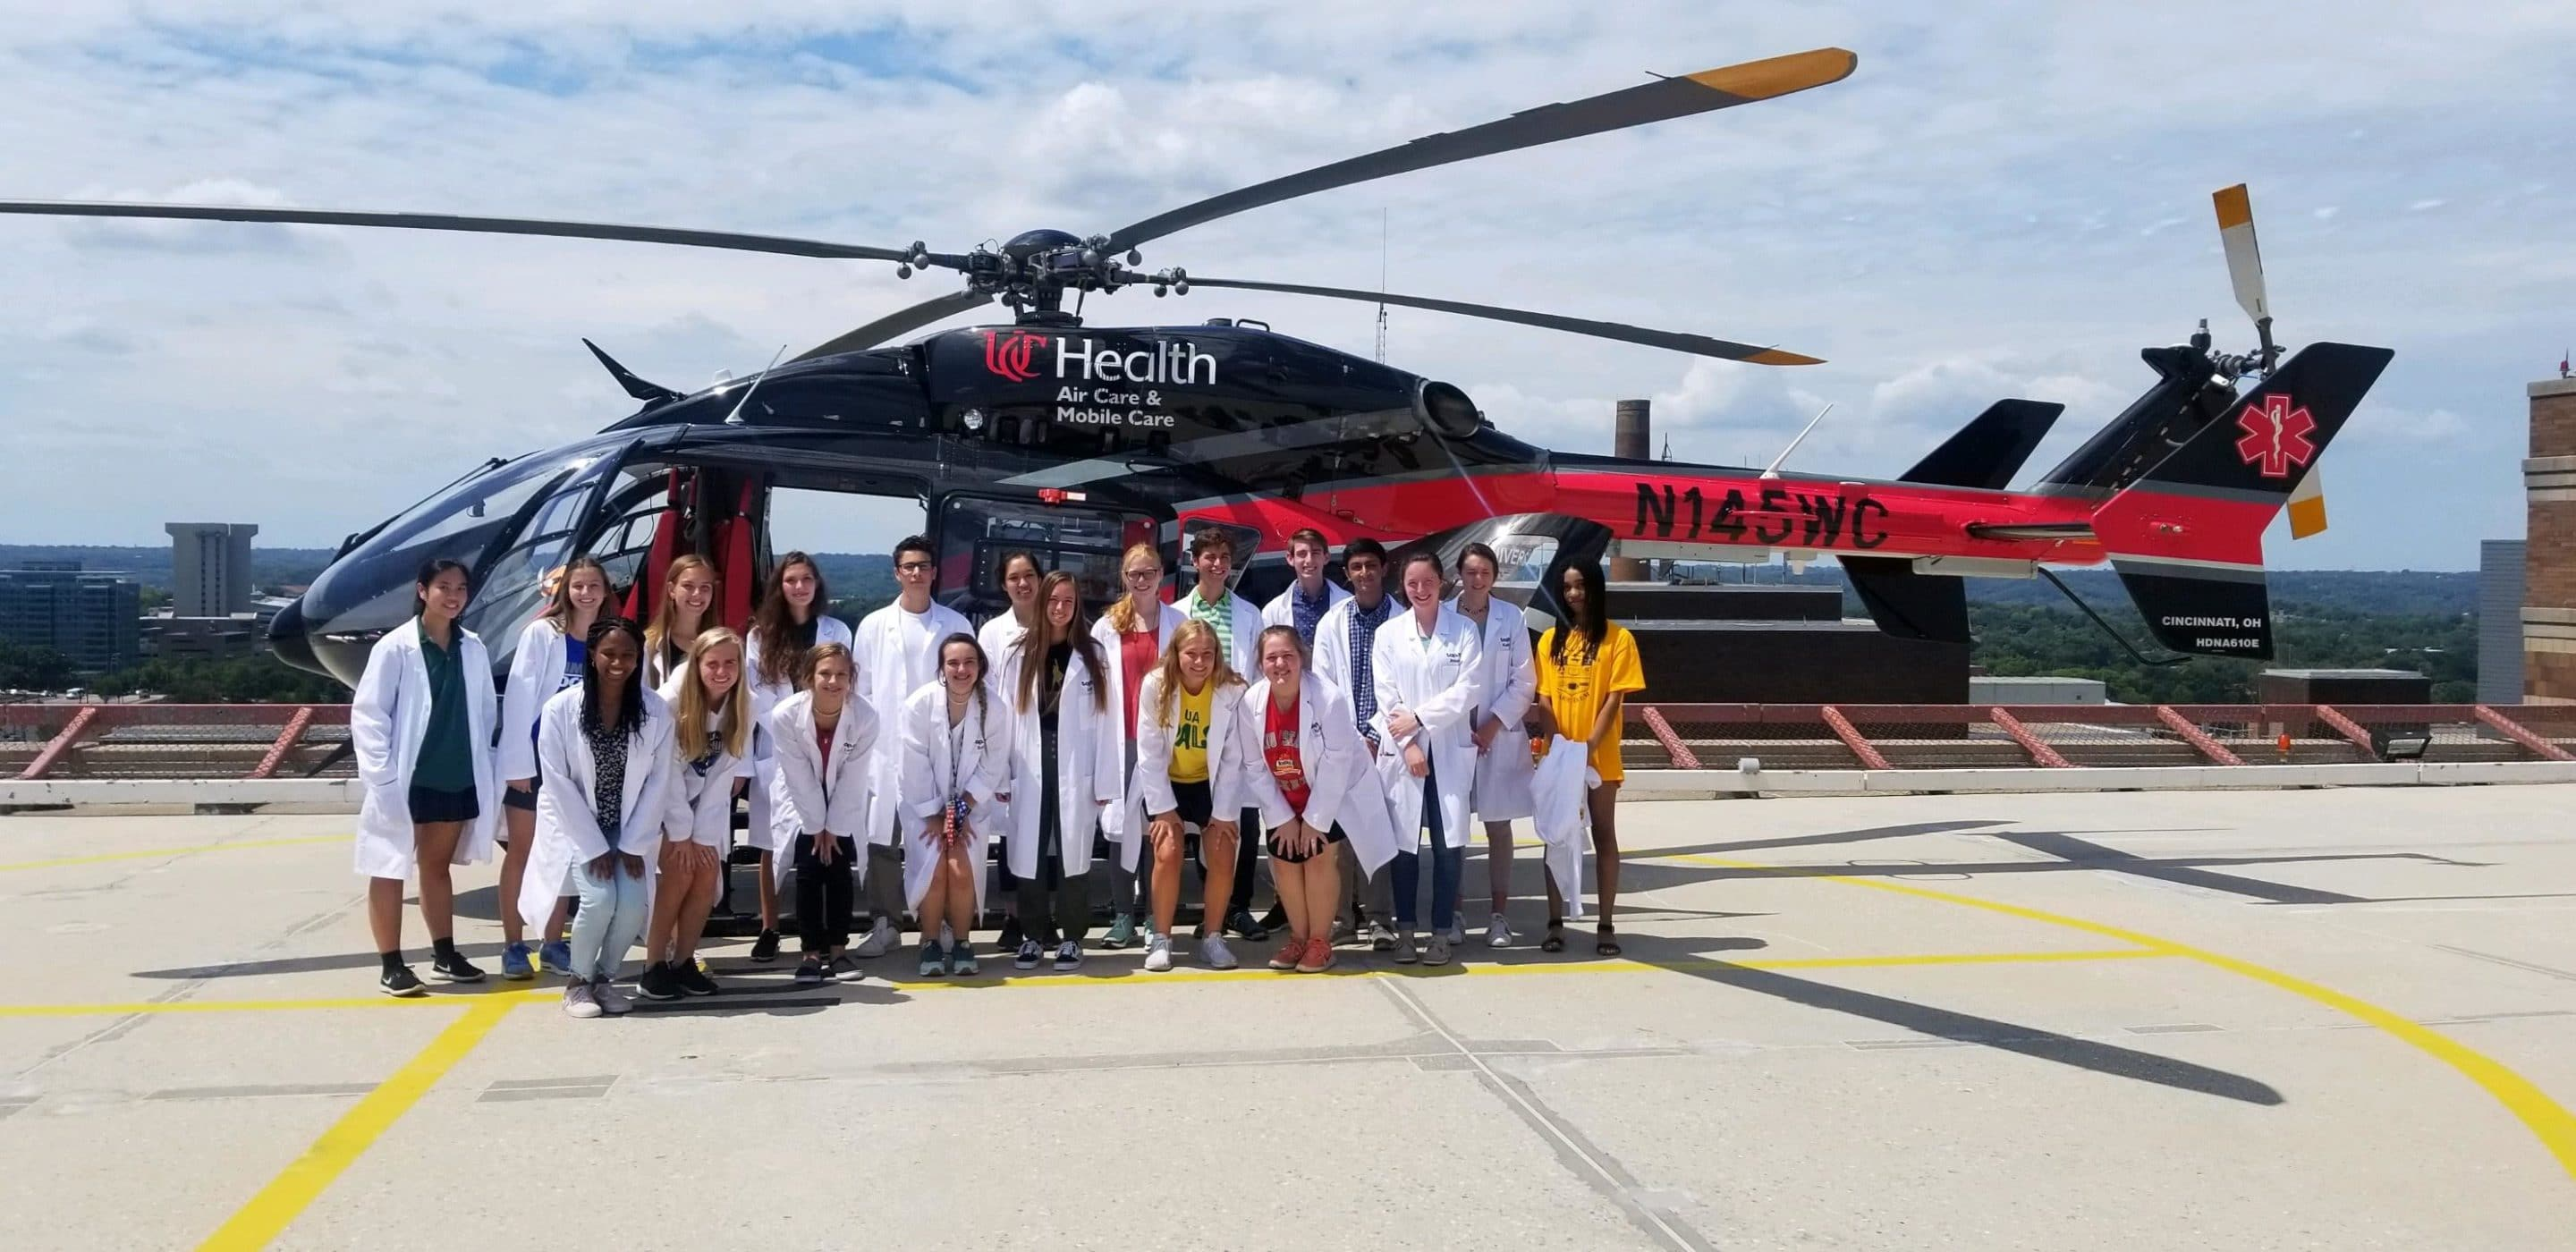 TAP MD visits UC Health for Trauma 101